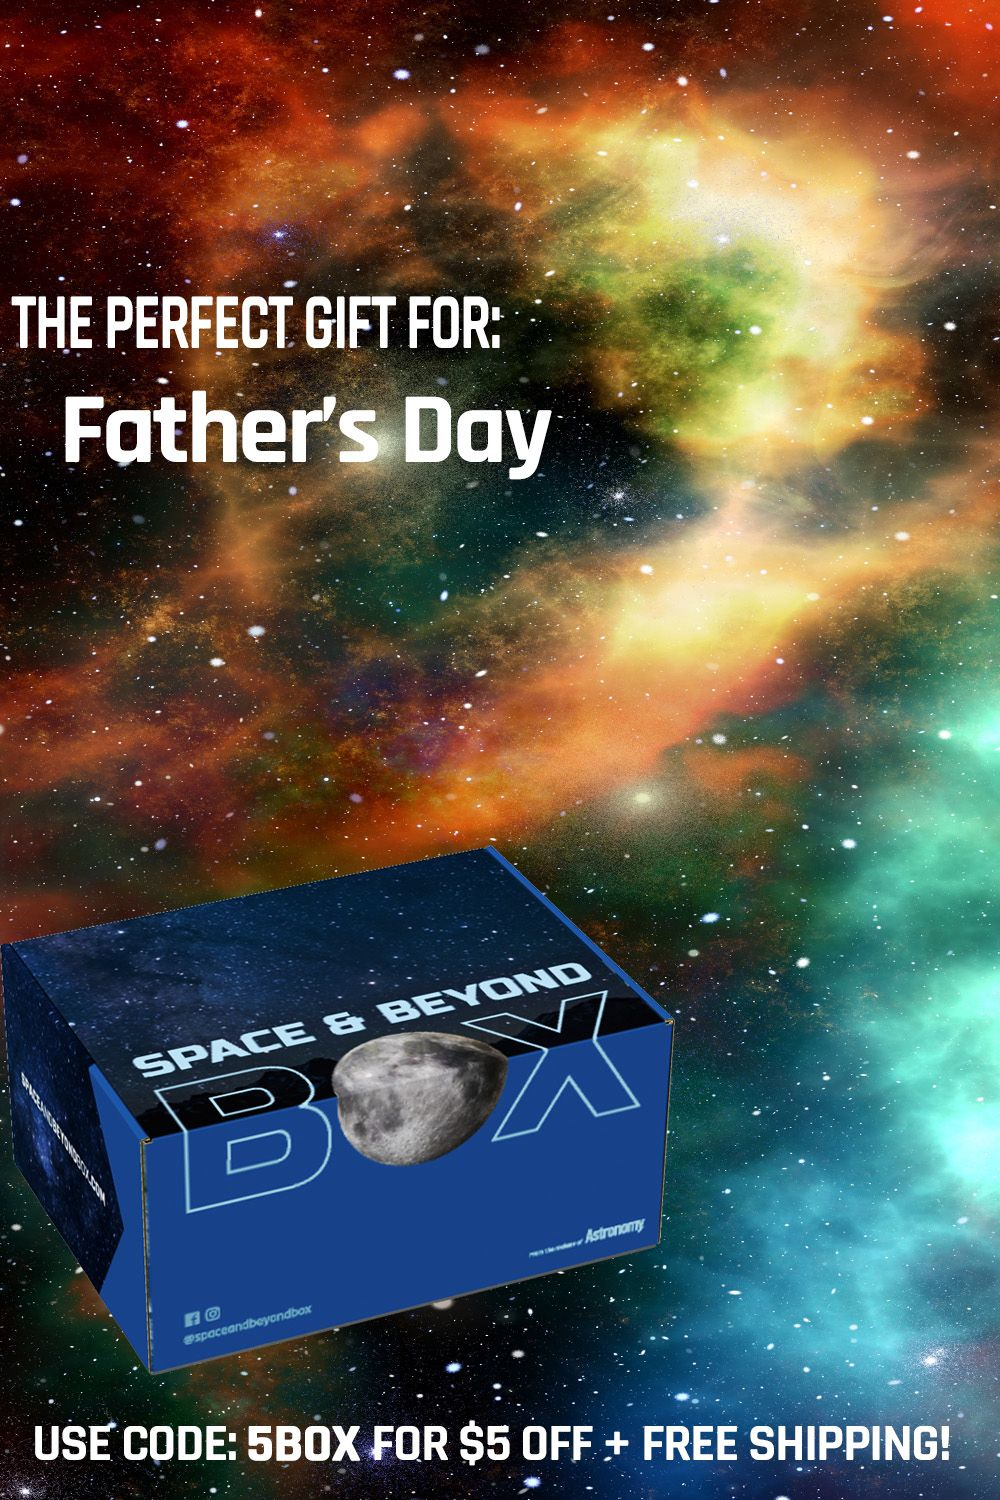 Father S Day Gift Guide Under 50 In 2020 Perfect Gift For Dad Presents For Dad Space Gift